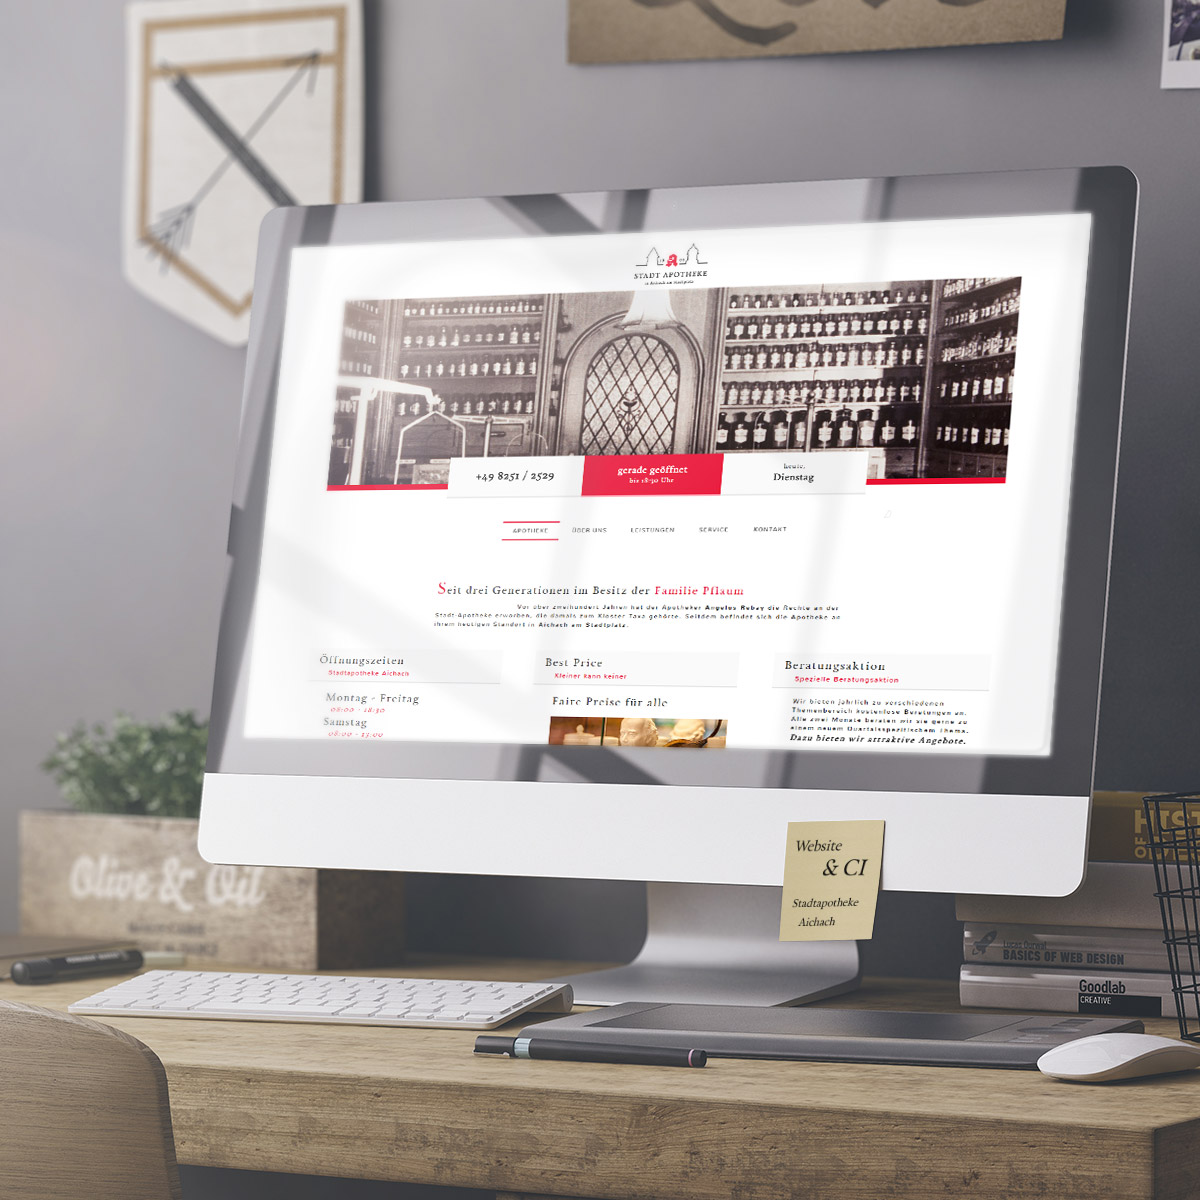 Stadtapotheke Aichach, Branding, Screendesign, Website, Responsive Design, Photography, Aichach